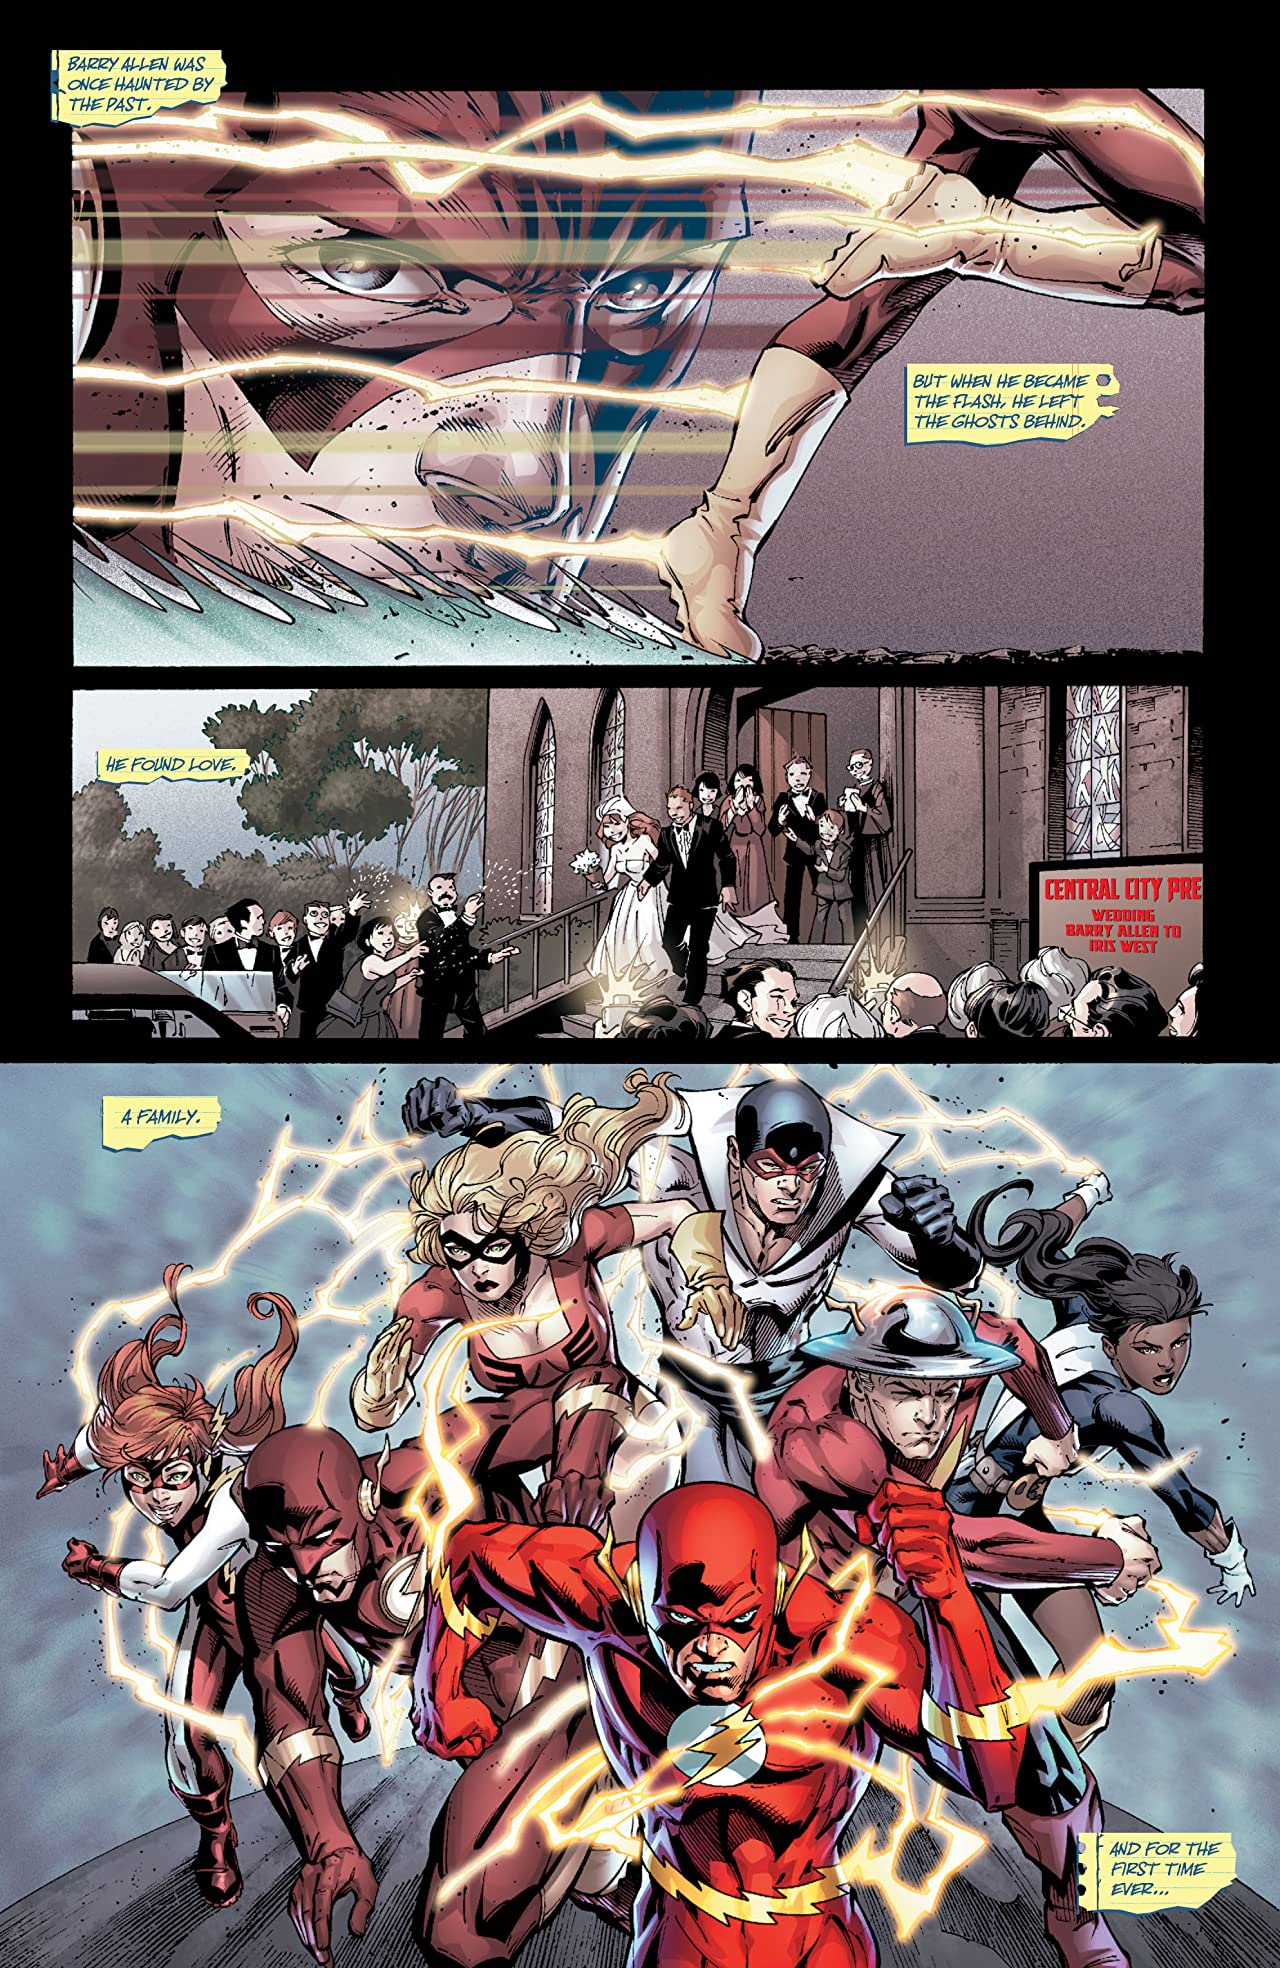 FLASHPOINT COMIC DOWNLOAD